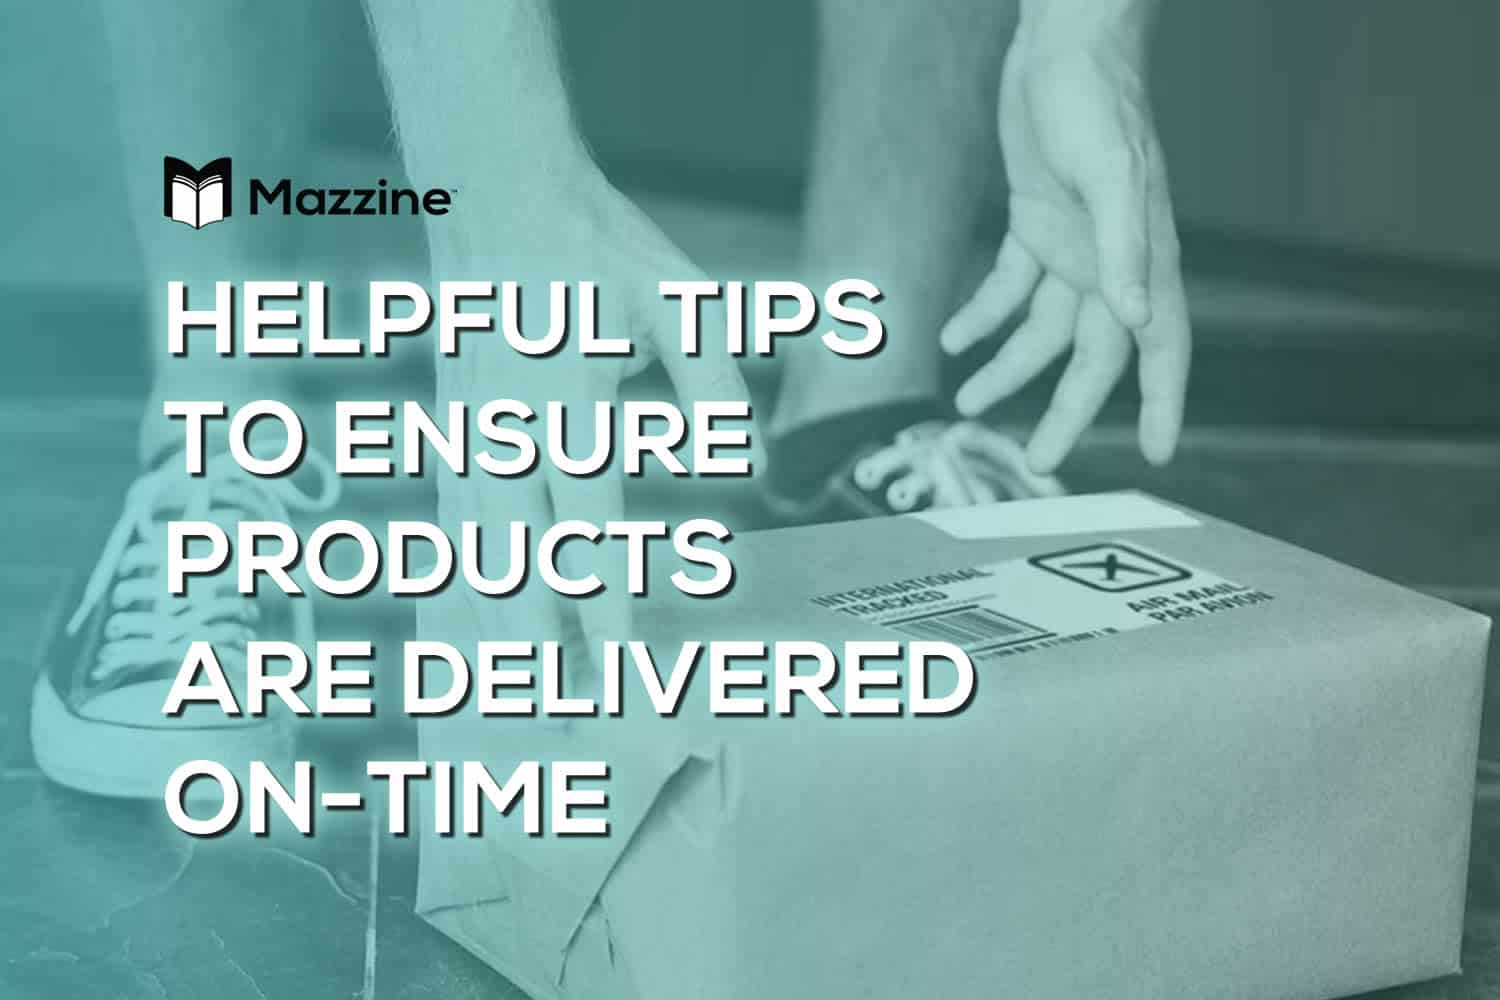 Helpful Tips to Ensure Products Are Delivered On-Time